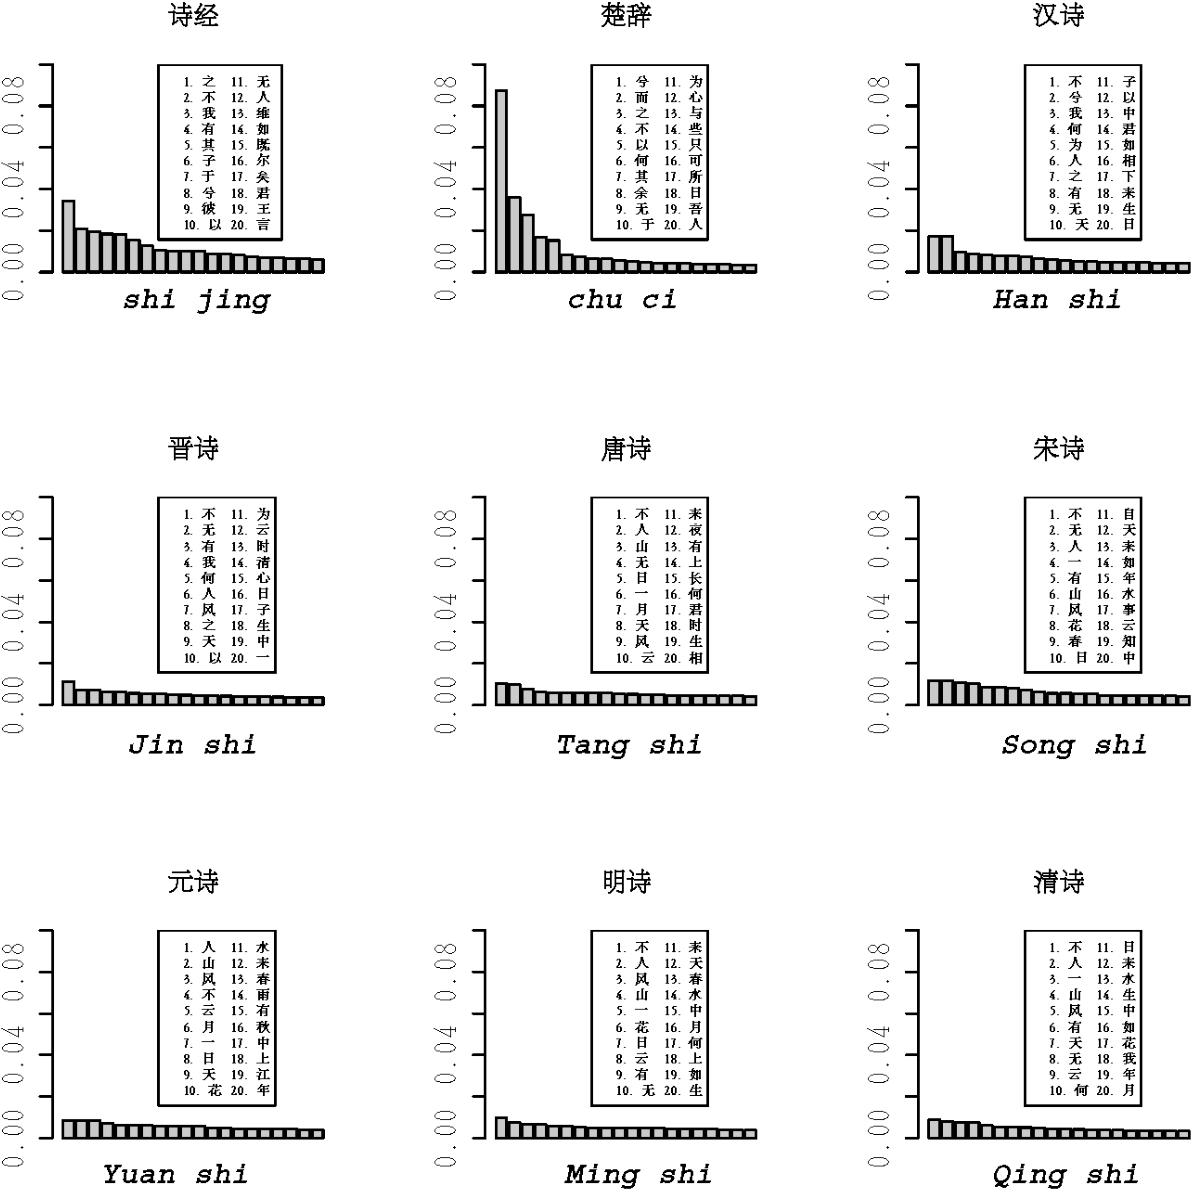 Figure 2 for On the evolution of word usage of classical Chinese poetry